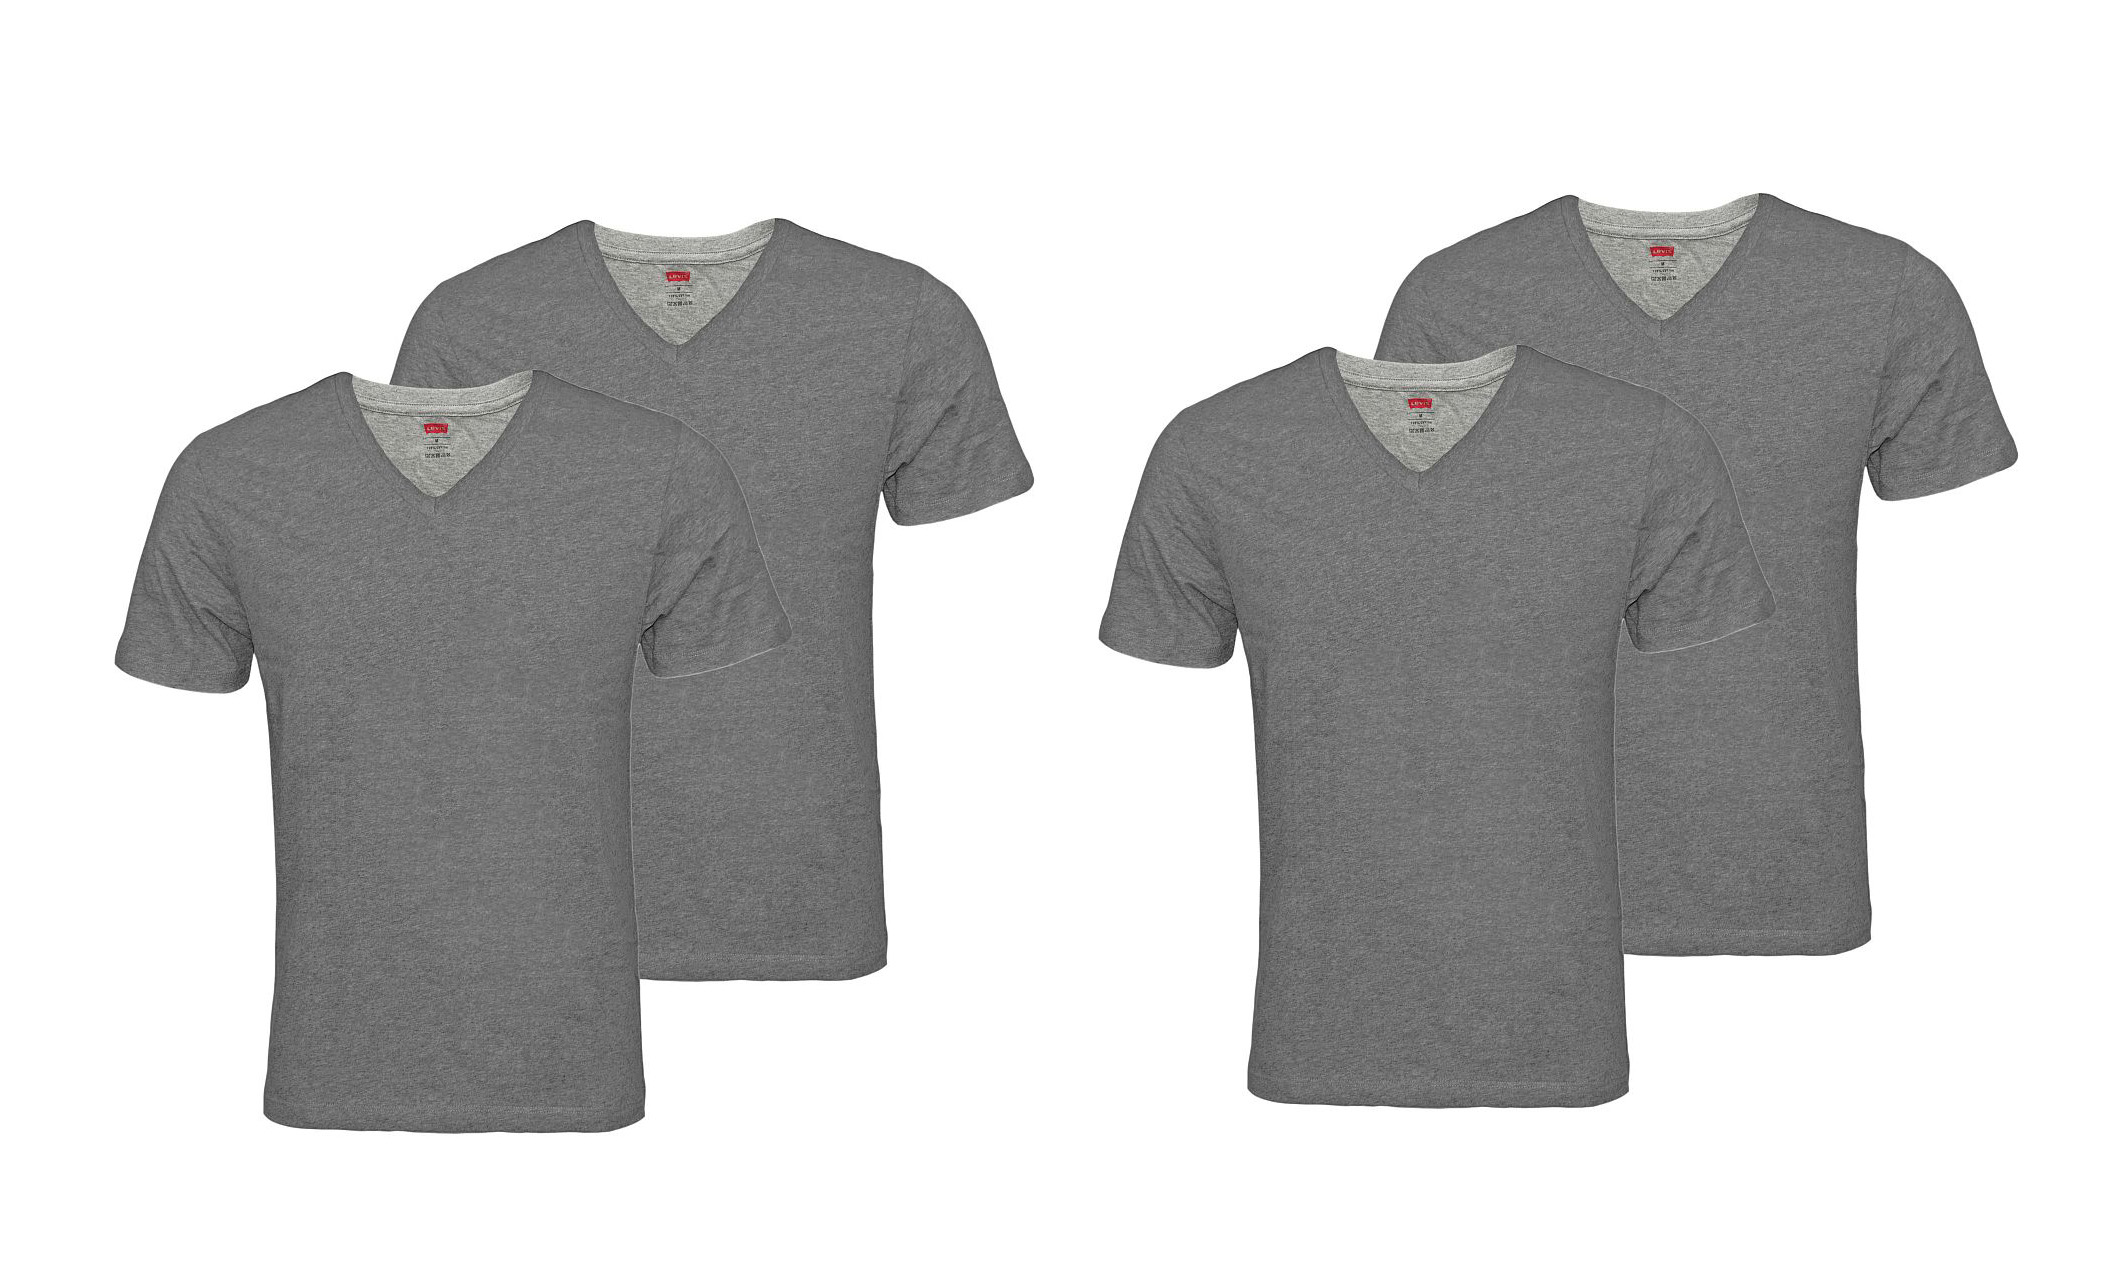 LEVIS Shirts 200SF 2 x 2er Pack T-Shirt 945004001 758 Middle Grey Melange SF17-LVSS2